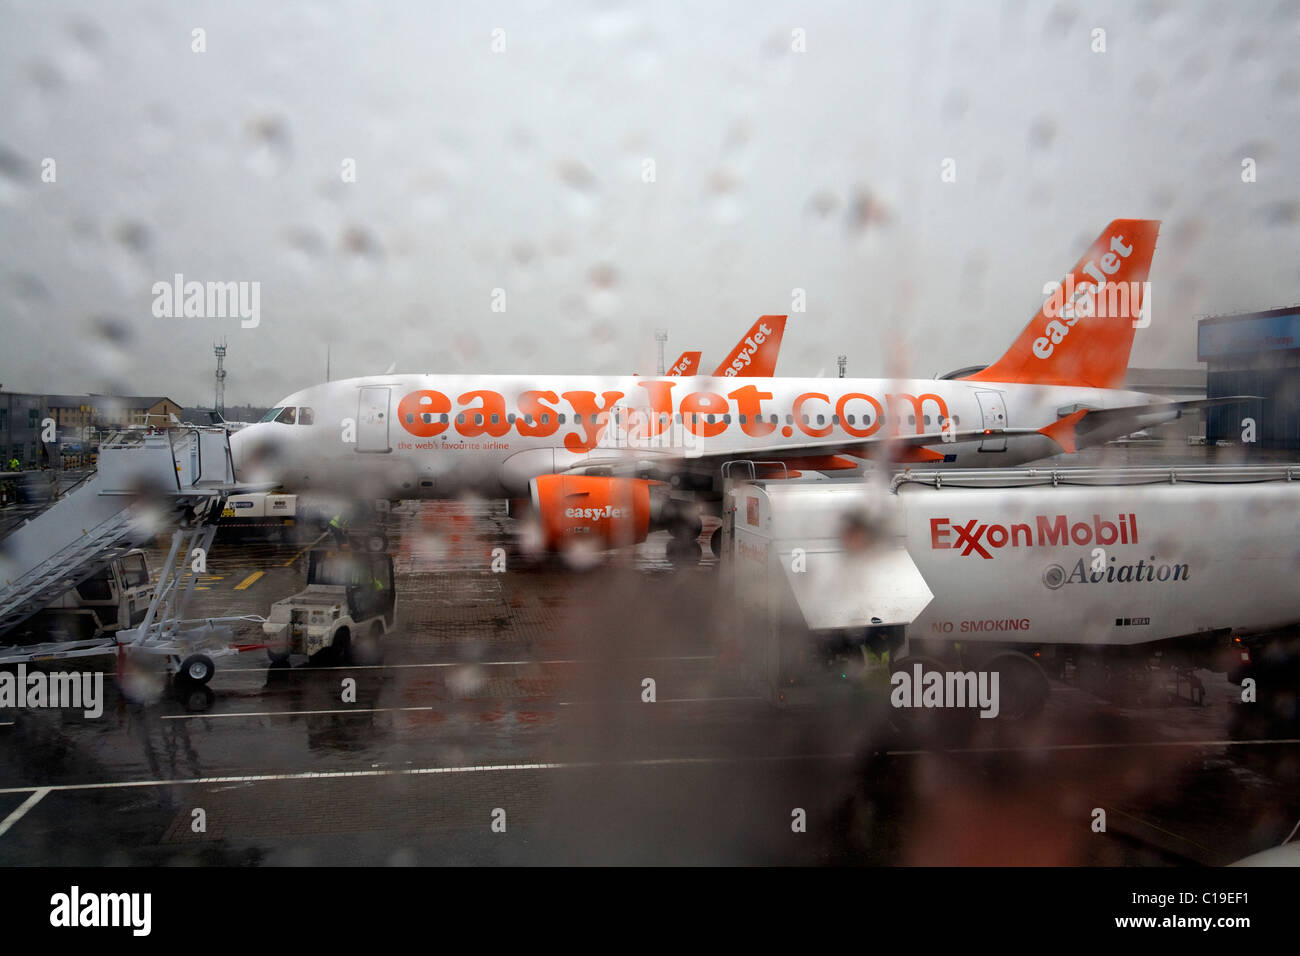 East jet air plane on rainy Sunday at Luton airport - Stock Image